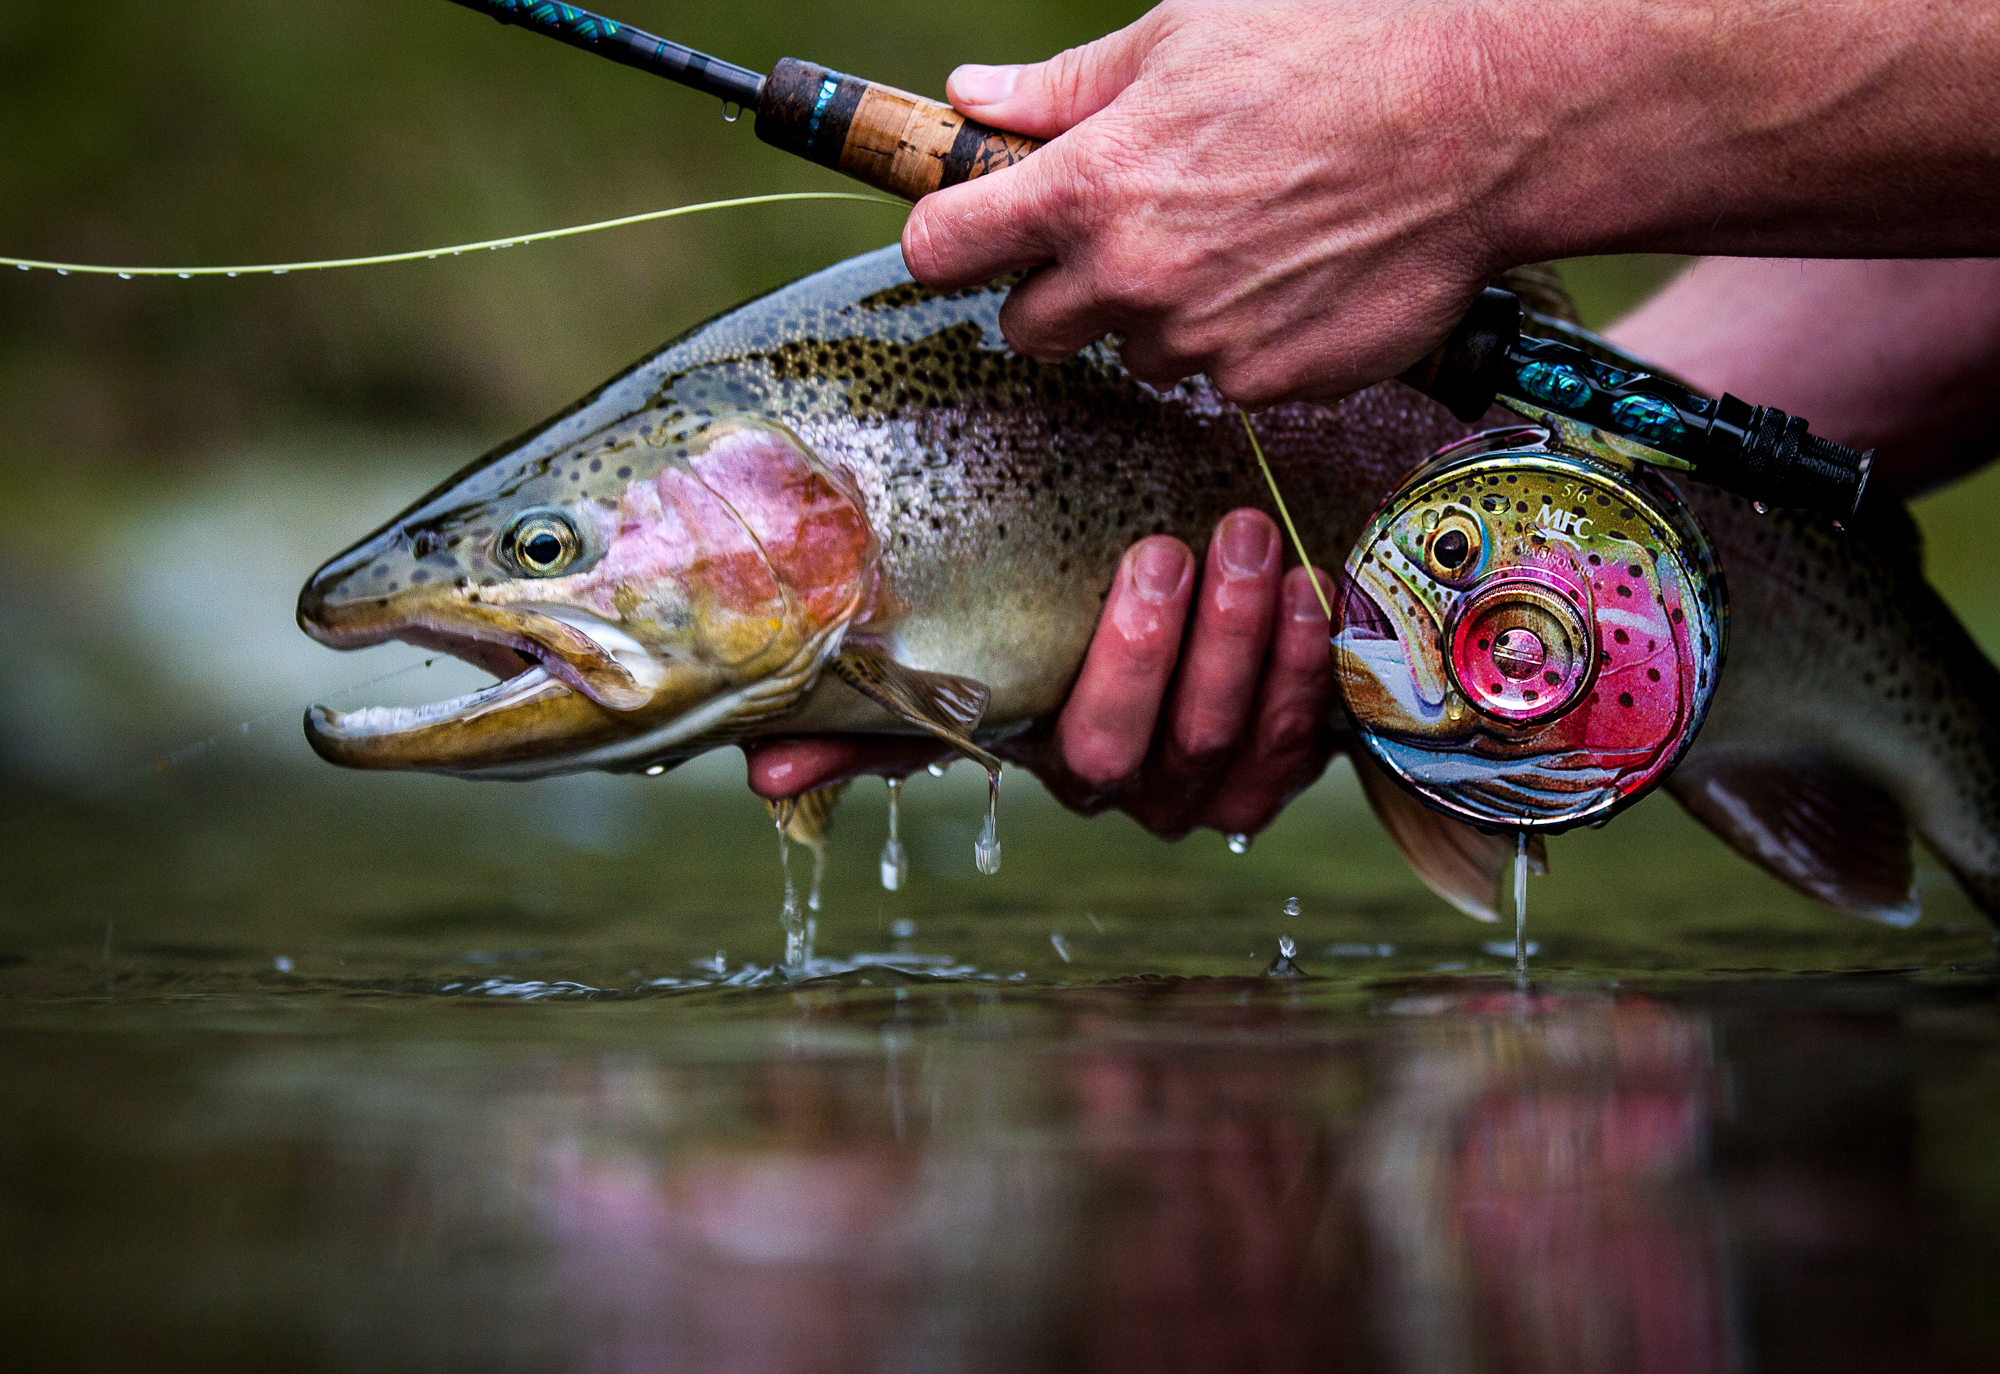 (RUNNER UP) What's not to like about this image? Sure, another stop down and we'd likely have a tack-sharp rainbow, but who can be bothered with such a worry when you're entranced by the silky-smooth texture of the water, the eerily well-paired couple that is Stu Hastie's New Zealand hog and the Montana Fly Company reel. Toss in Stu's handy work on the custom fly rod, and the whole scene seems like it was pulled from a dream.